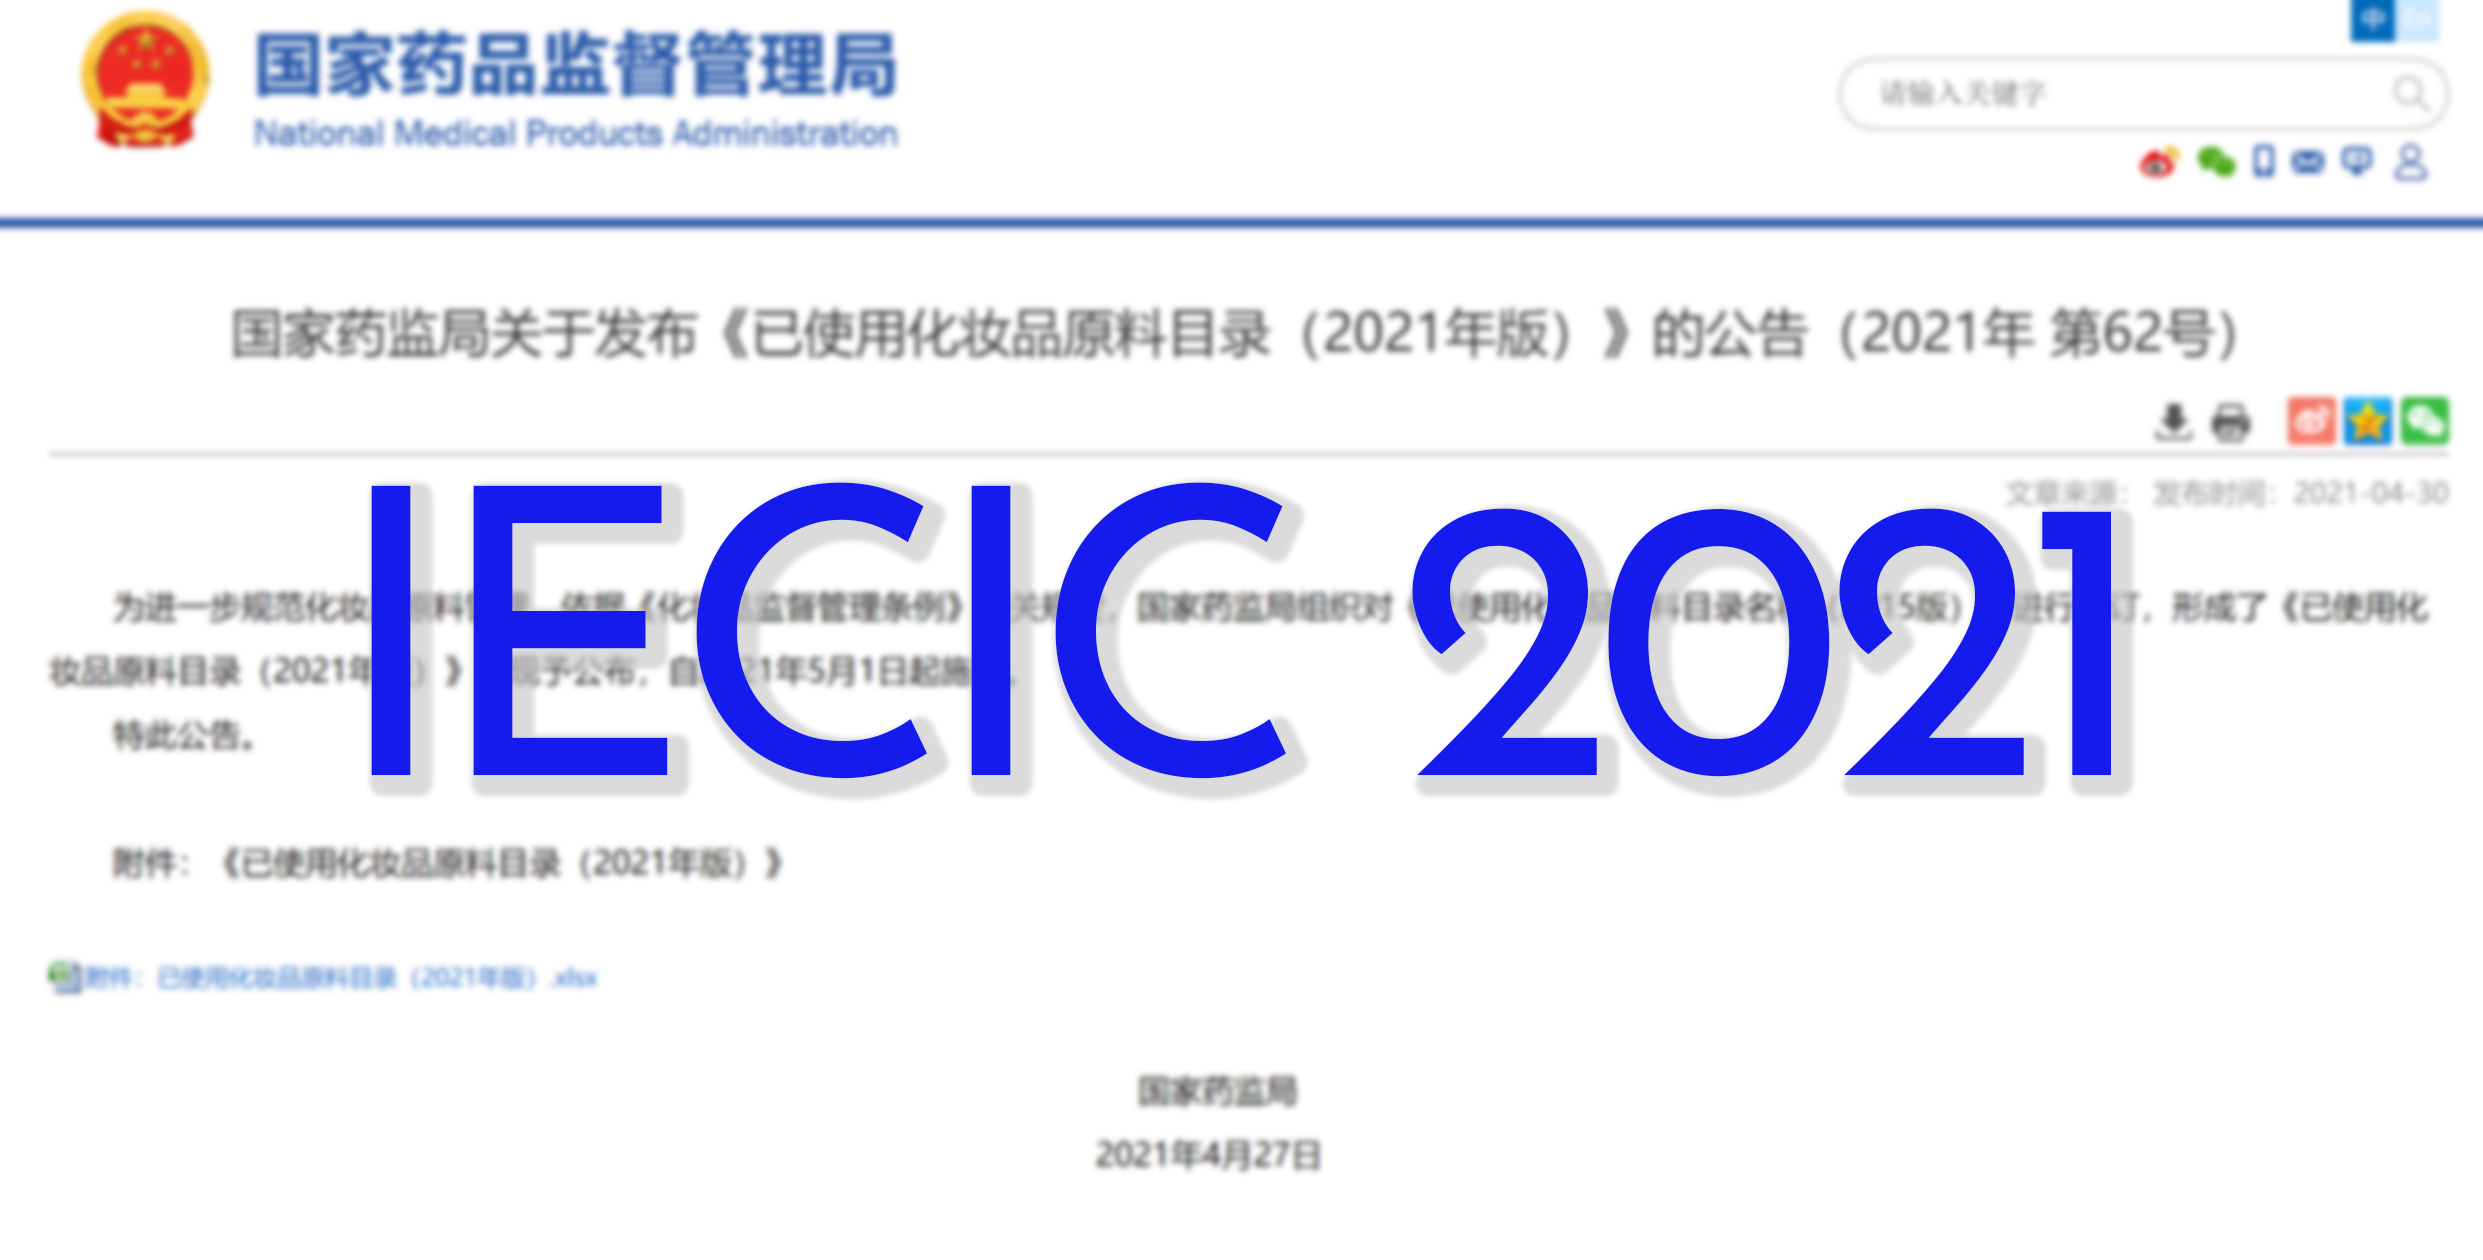 BREAKING: NMPA Published Inventory of Existing Cosmetics Ingredients in China (IECIC 2021)